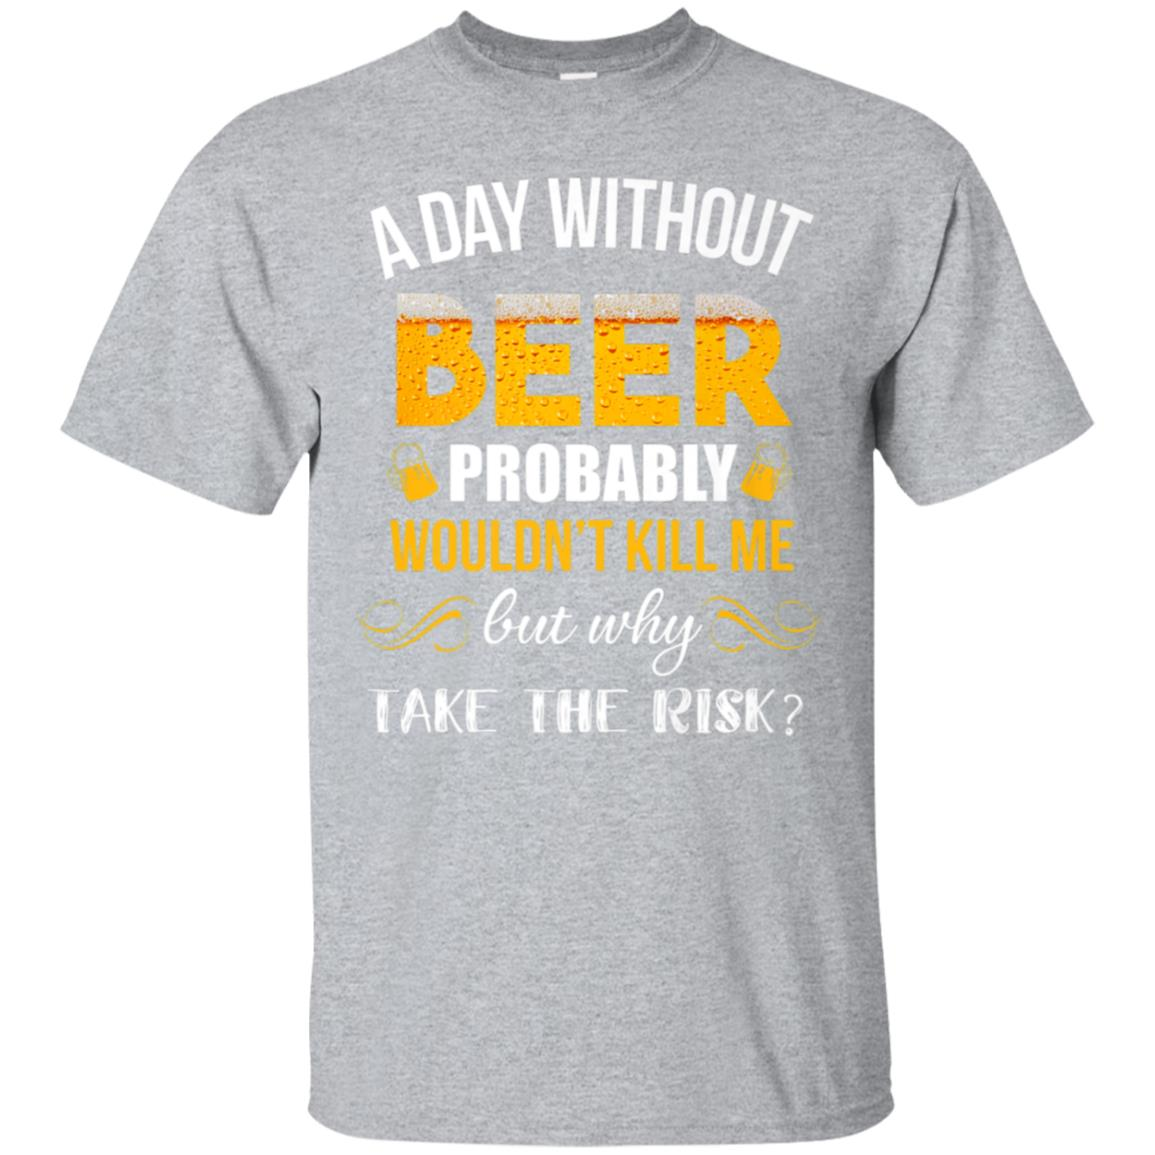 A Day Without Beer Funny Beer T-Shirt Great For Beer Lover 99promocode